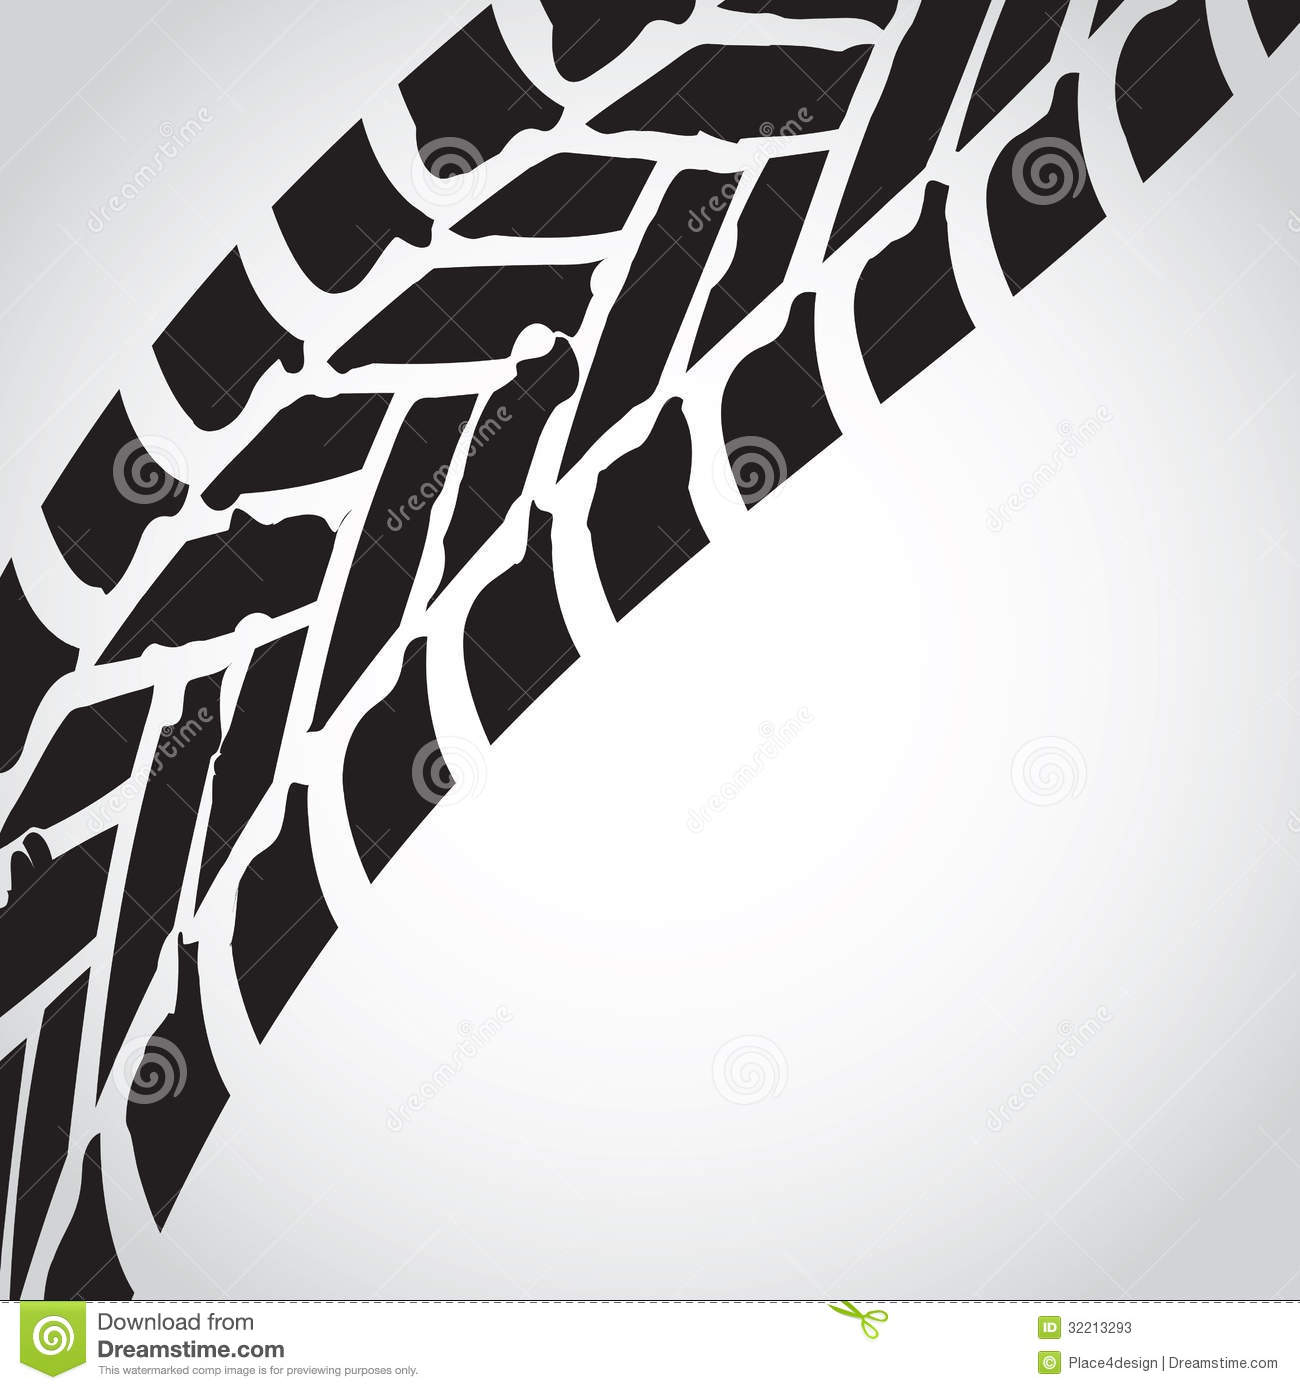 Dirt Street Stock >> Tire track background stock vector. Image of bicycle - 32213293